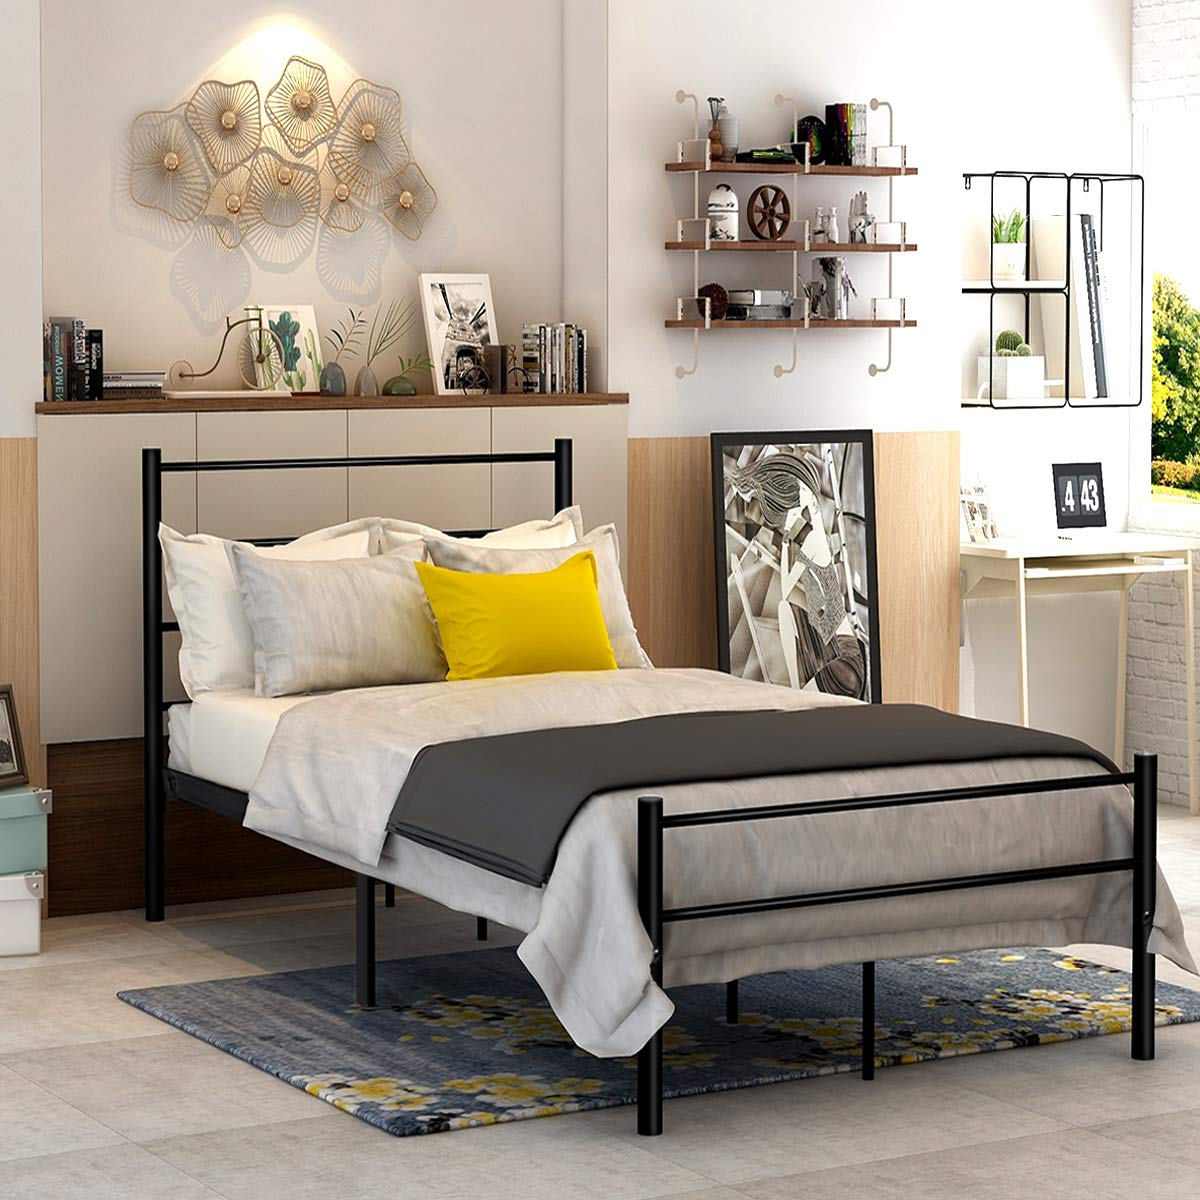 Metal Bed Twin Size with Headboard and Footboard Mattress Foundation Steel Slat Support Black for Kids DUMEE